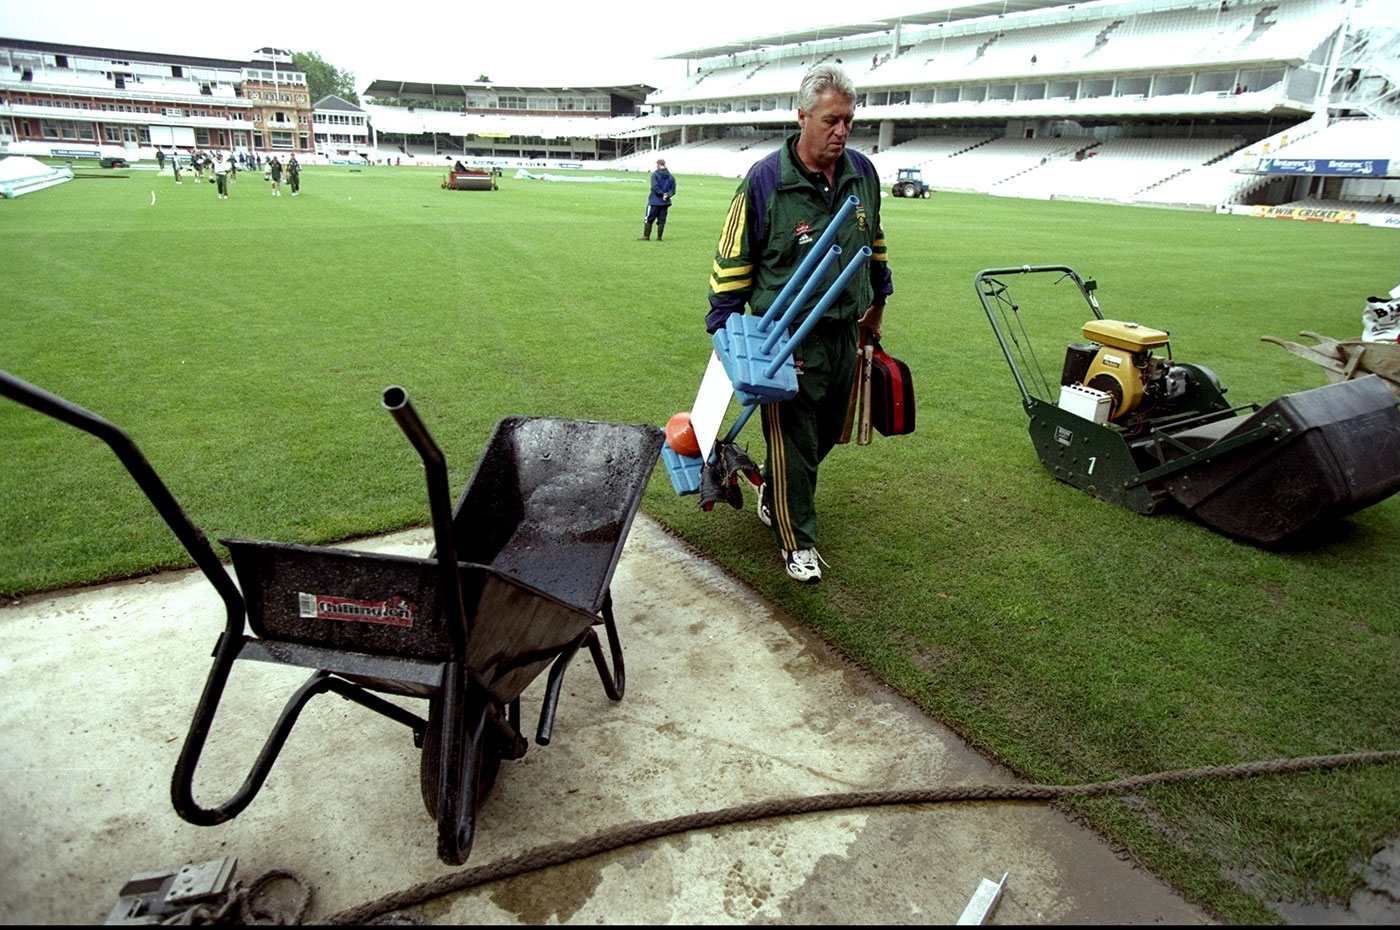 2020 vision: Woolmer conceived of a future where Associates would play Test cricket long before anyone else in the cricket world even thought they were fit to receive ODI status